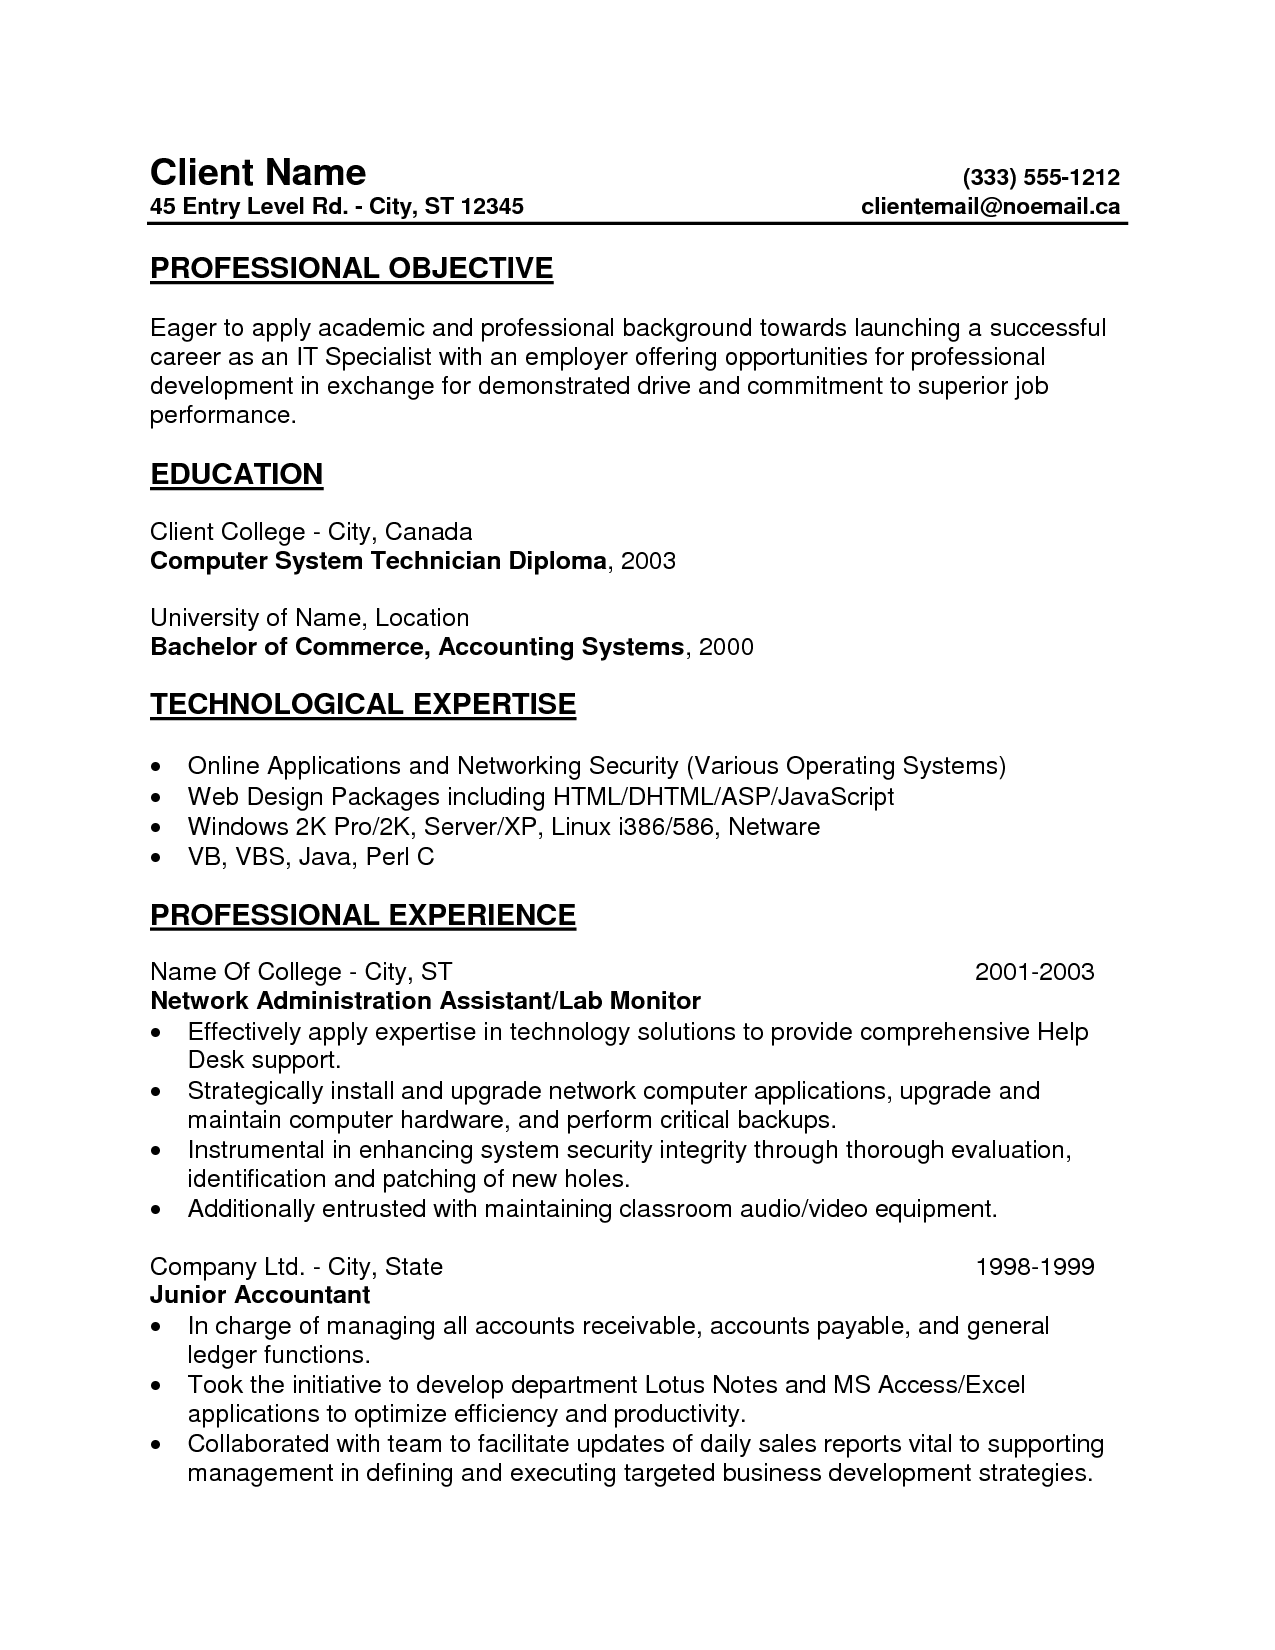 100 Resume Of A Web Designer Medical Assistant Sample